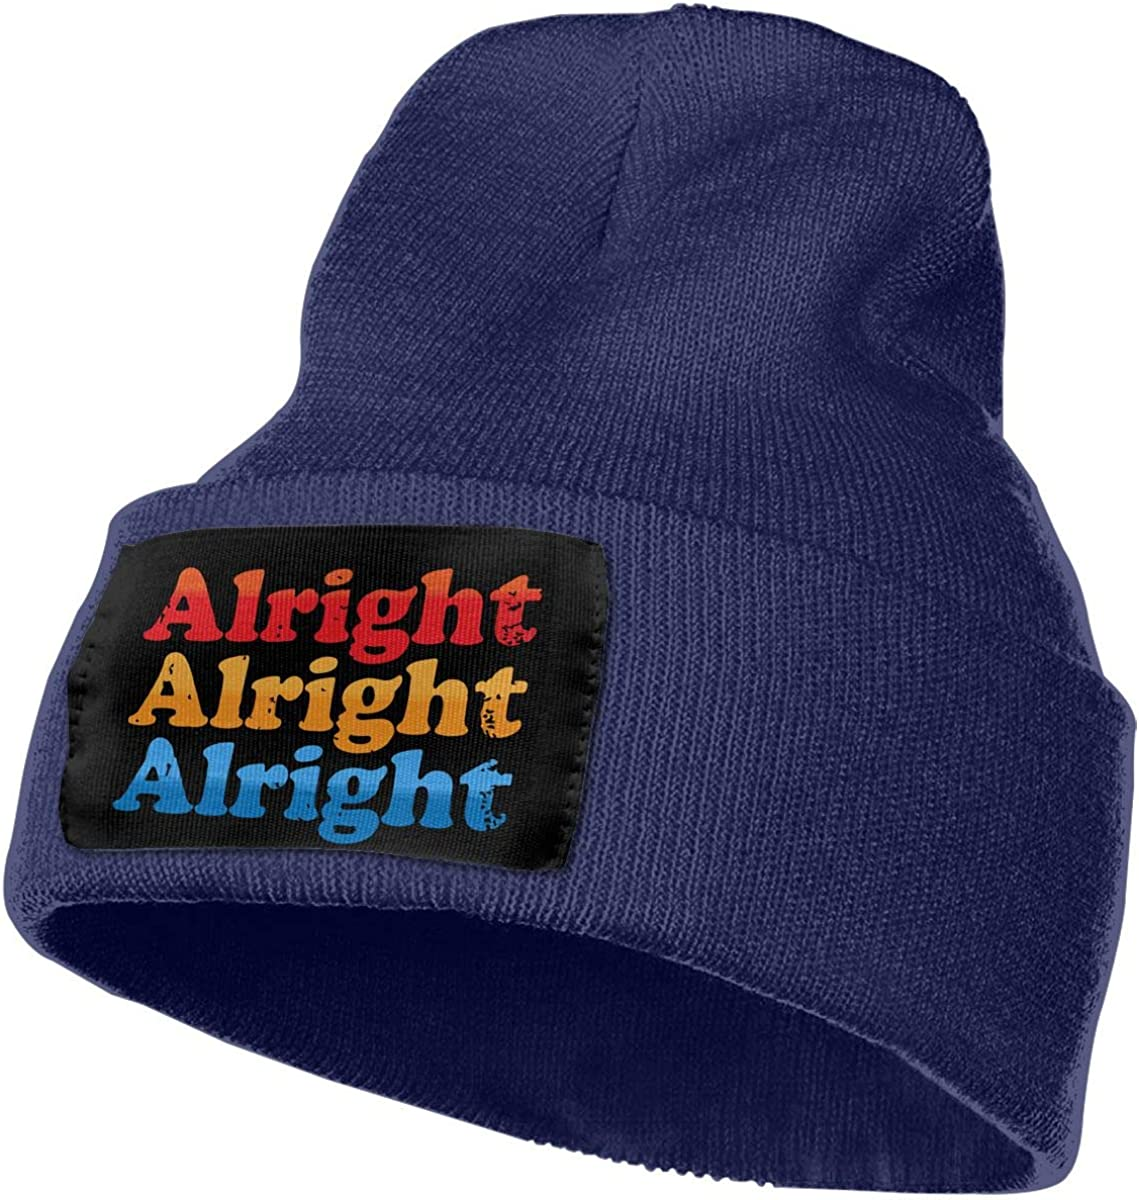 COLLJL-8 Unisex Alright Alright Alright Outdoor Stretch Knit Beanies Hat Soft Winter Skull Caps